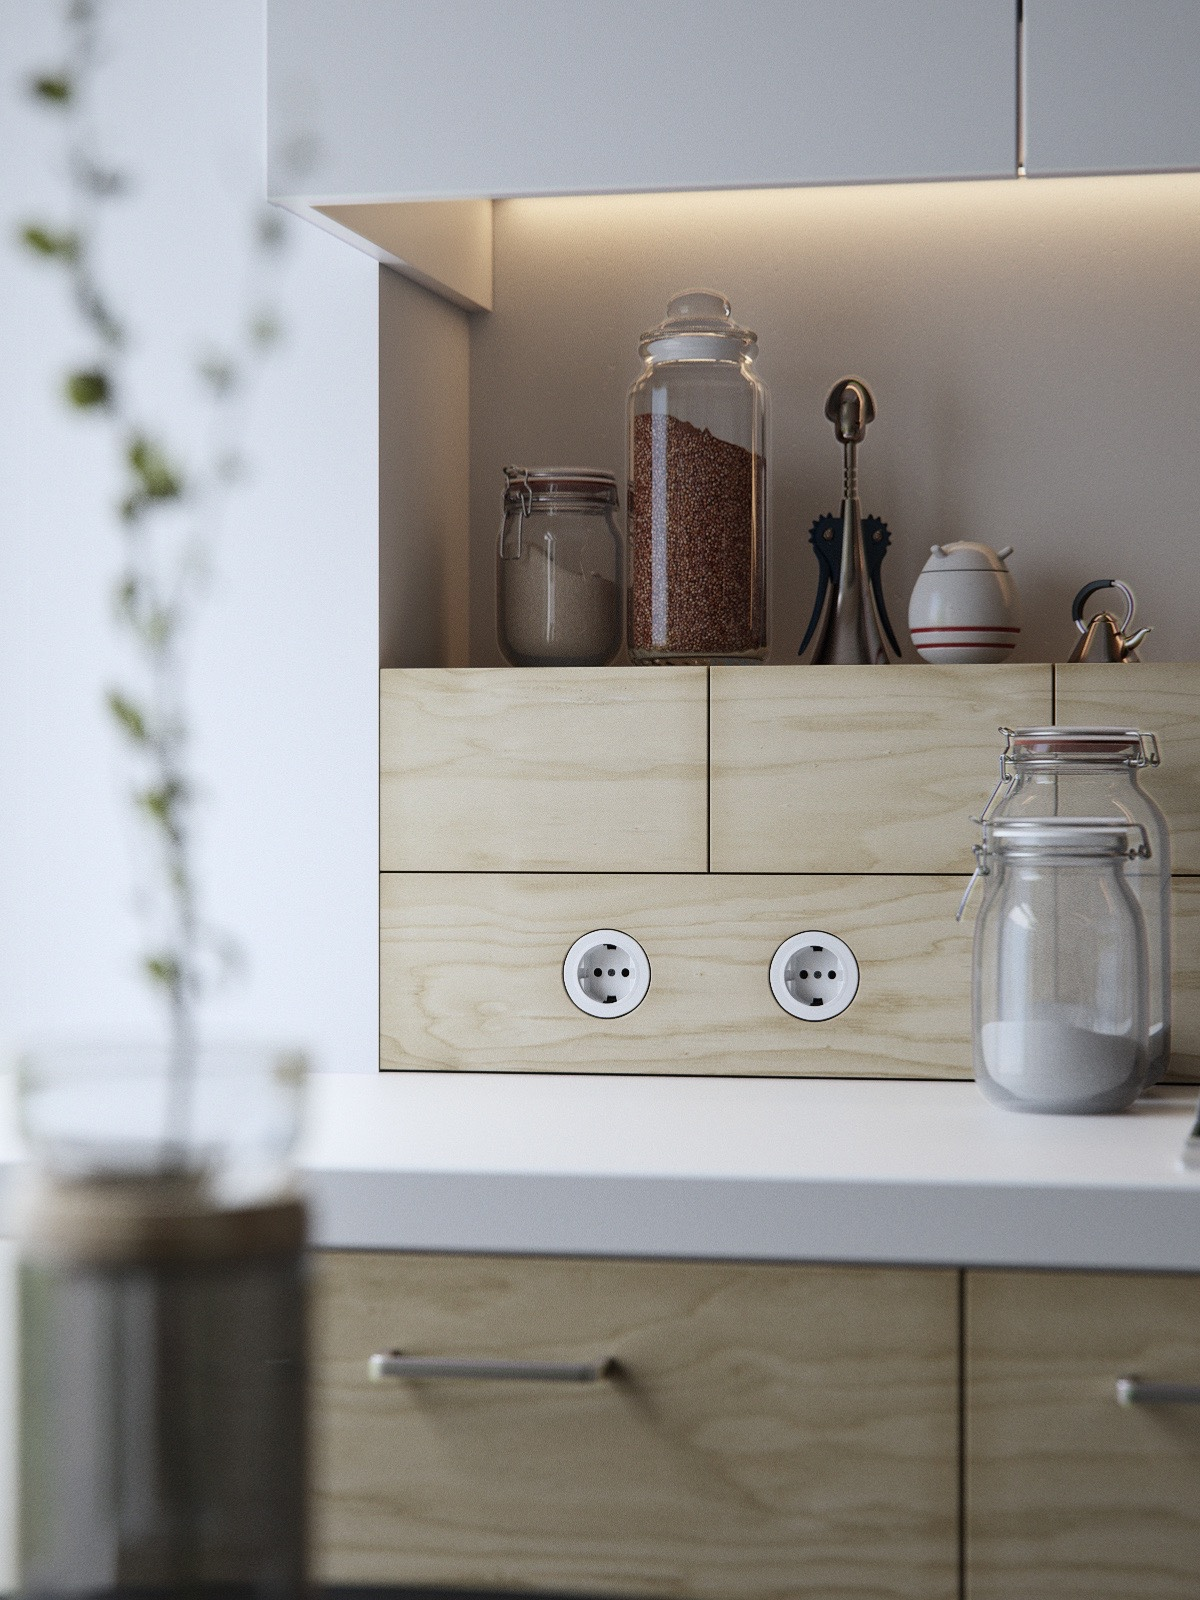 Finer details polish up a space just as much as a grandiose staircase. In the kitchen, simple mason jars reduce clutter.